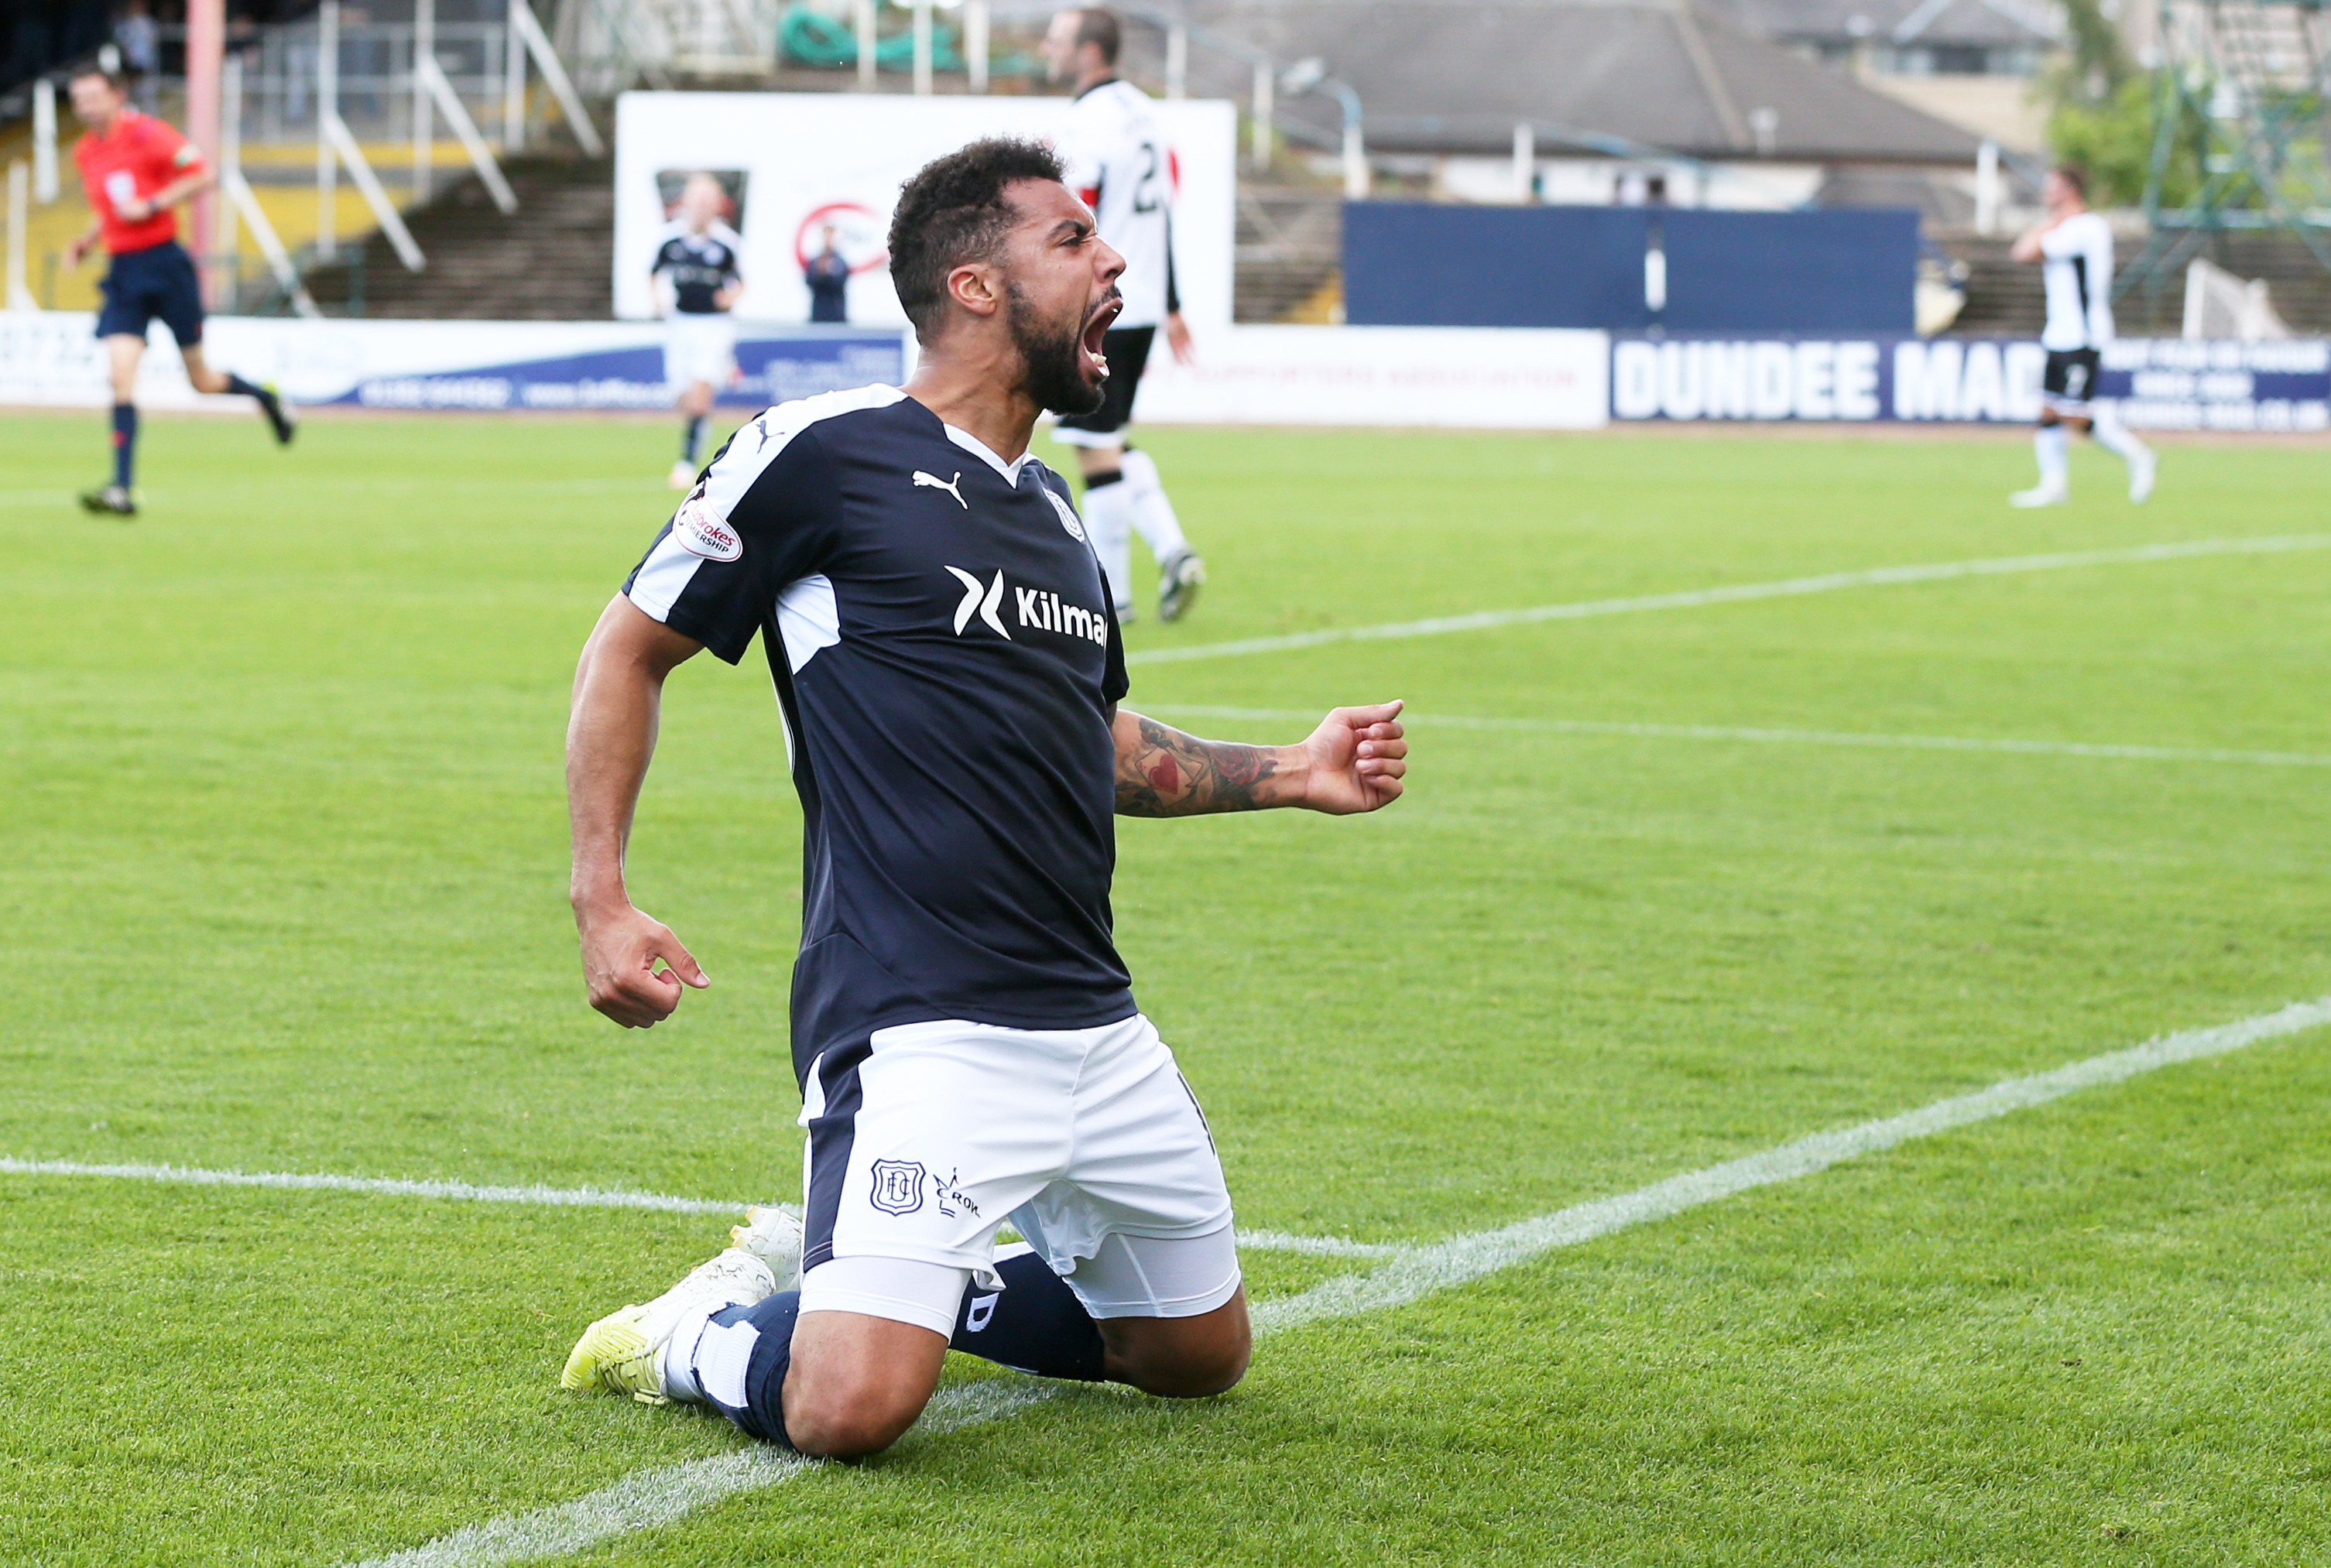 Kane Hemmings has been knocking in goals galore for Dundee these past few weeks.